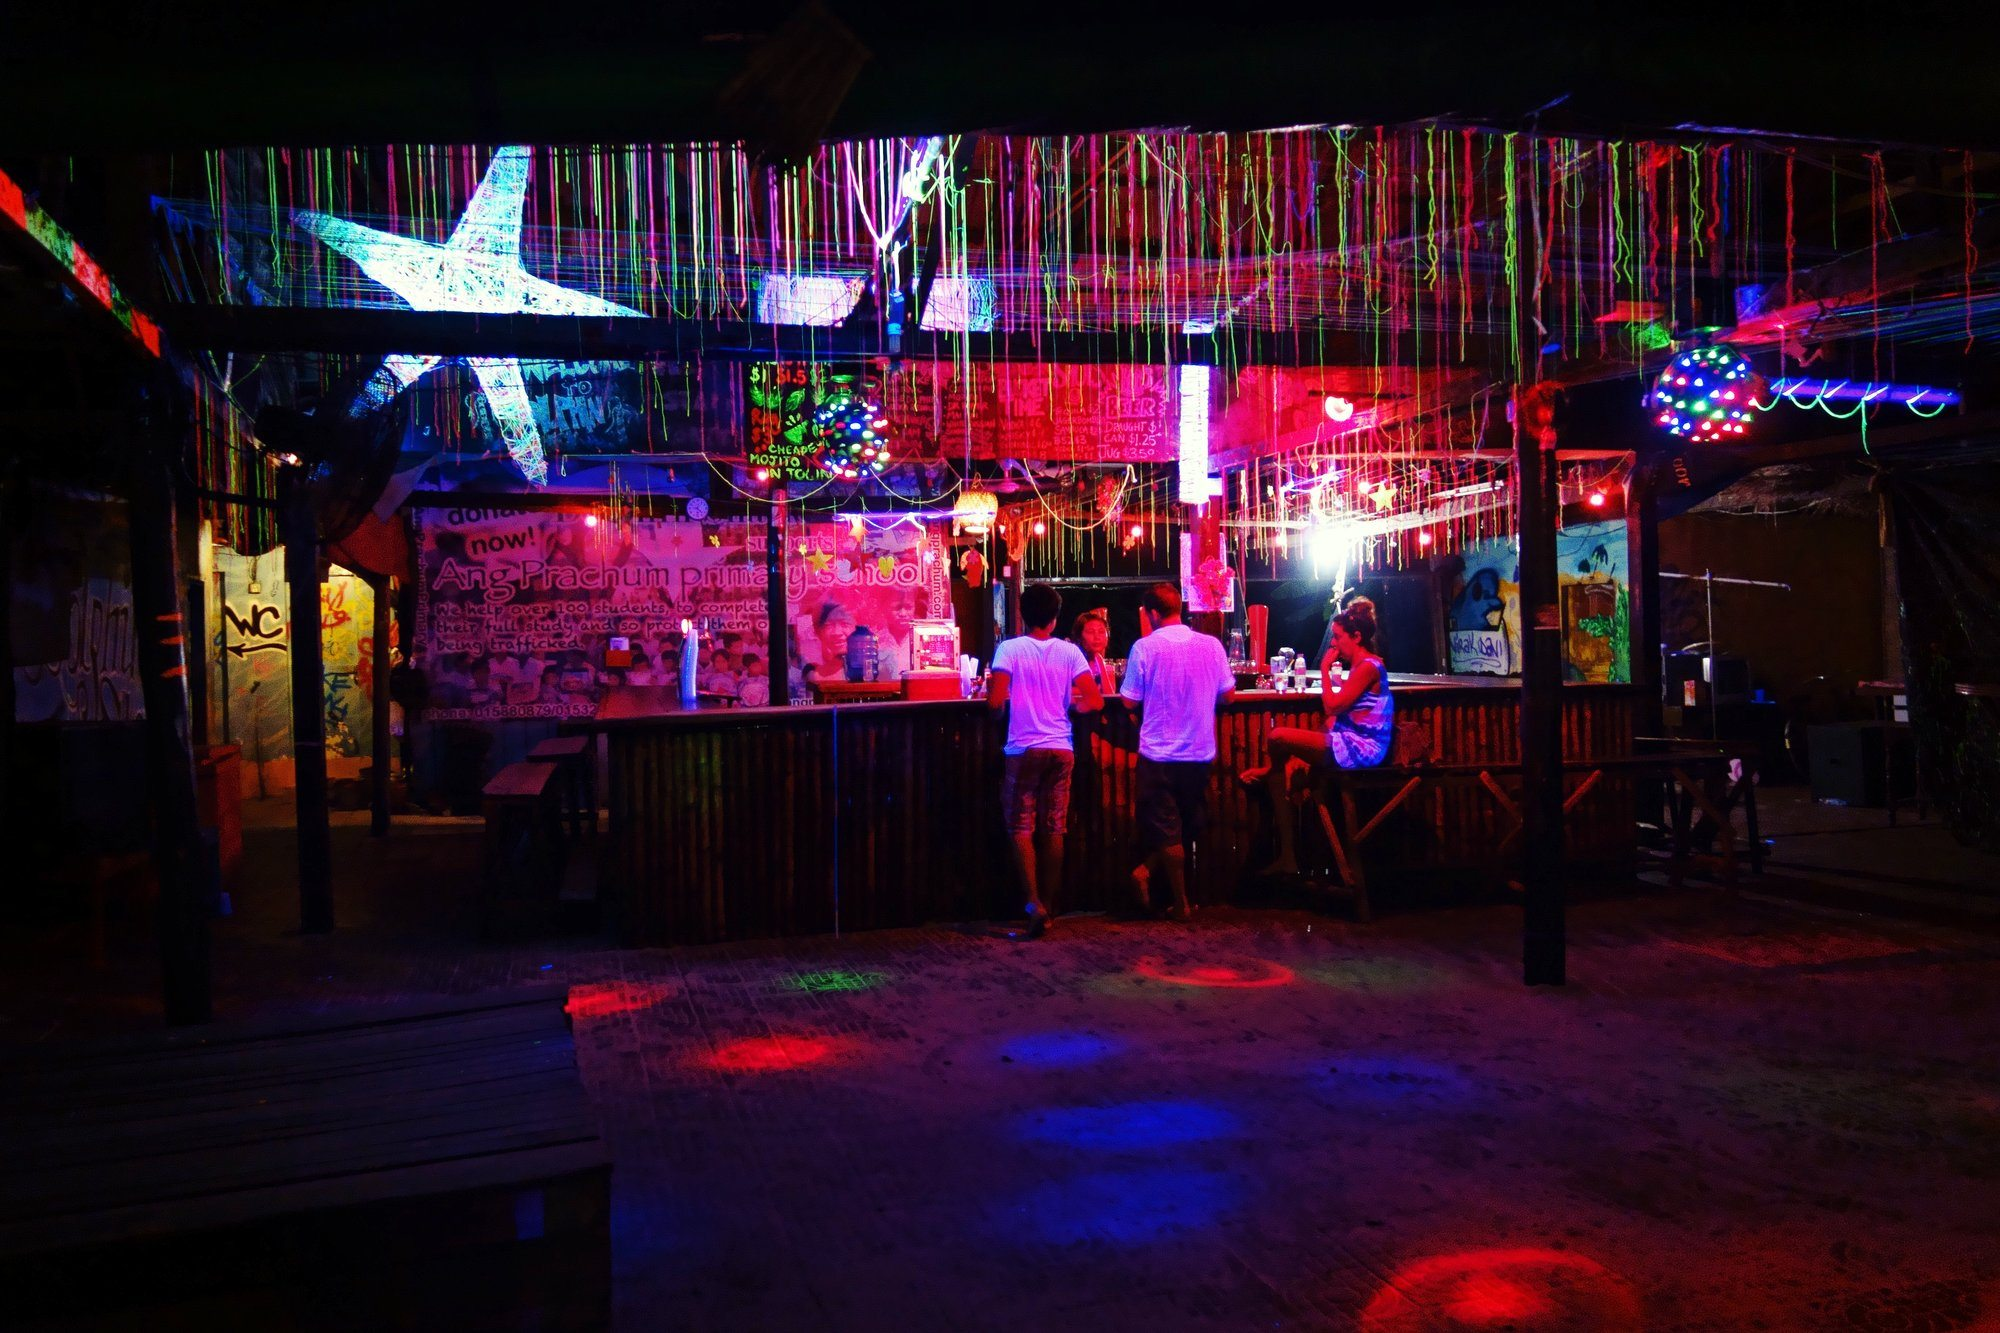 10 Bars That Prove Nightlife in Patong is the Craziest